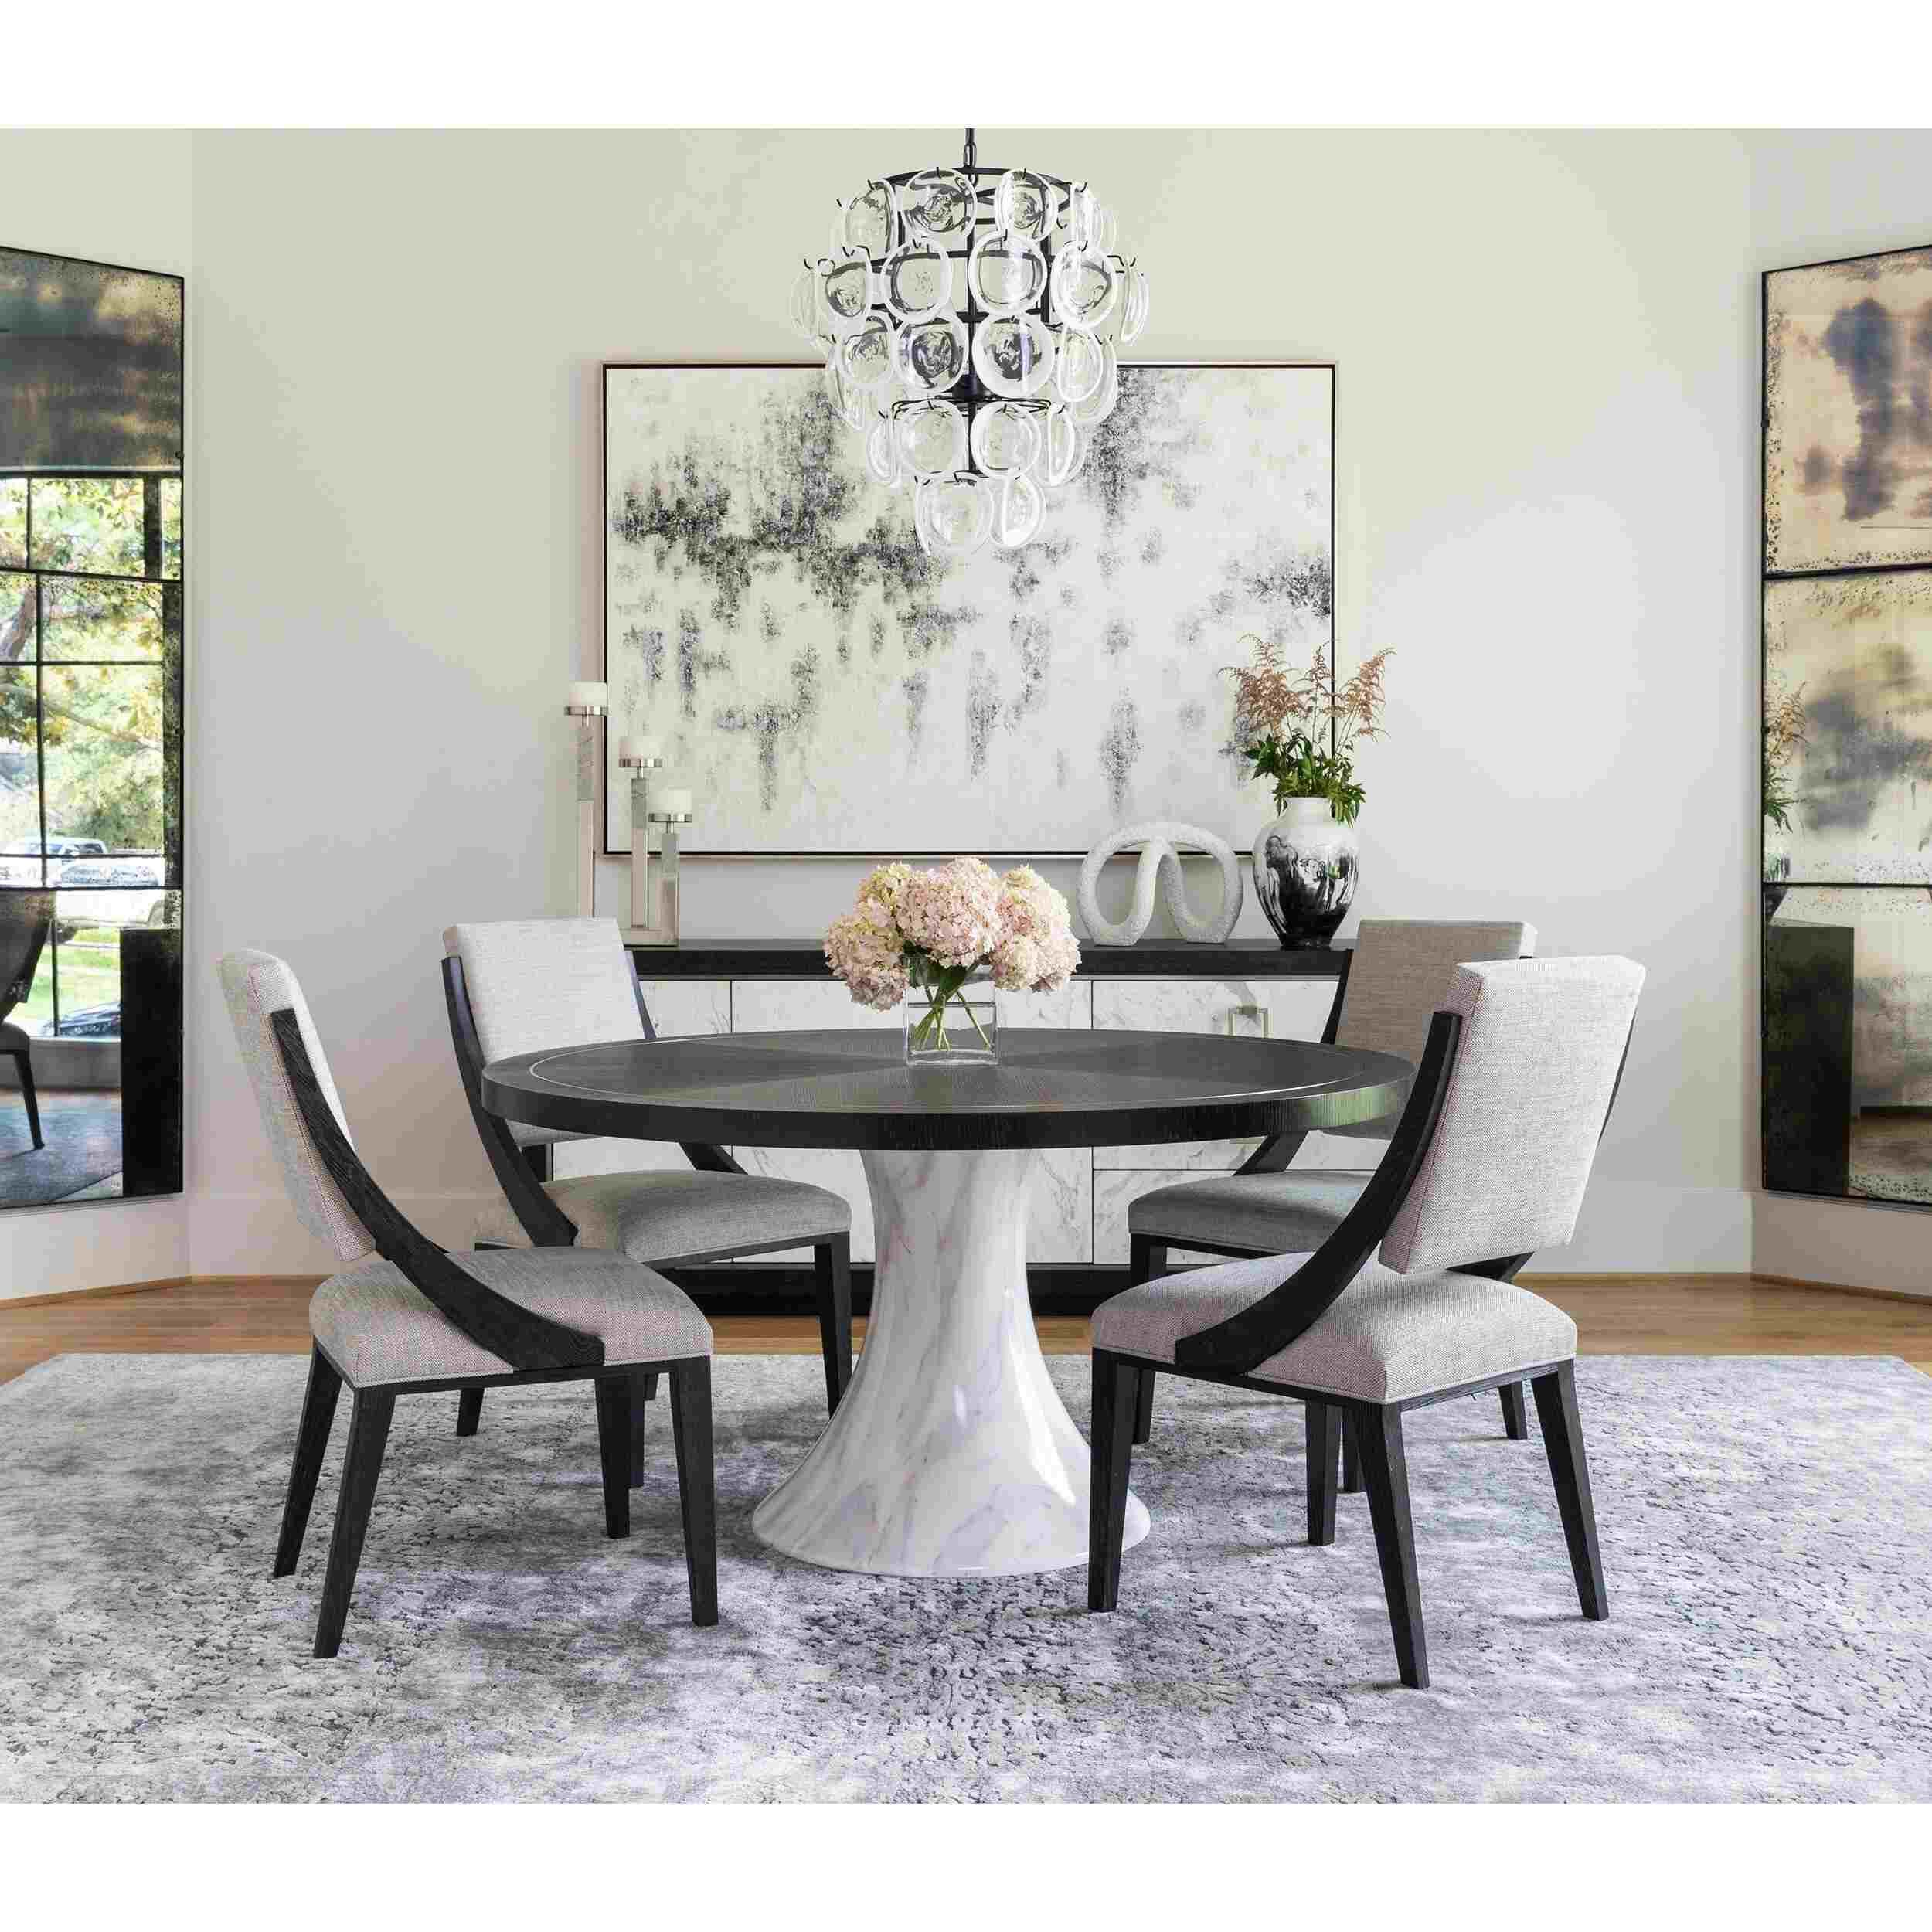 Contemporary Round Dining Room Sets   Round dining room sets ...